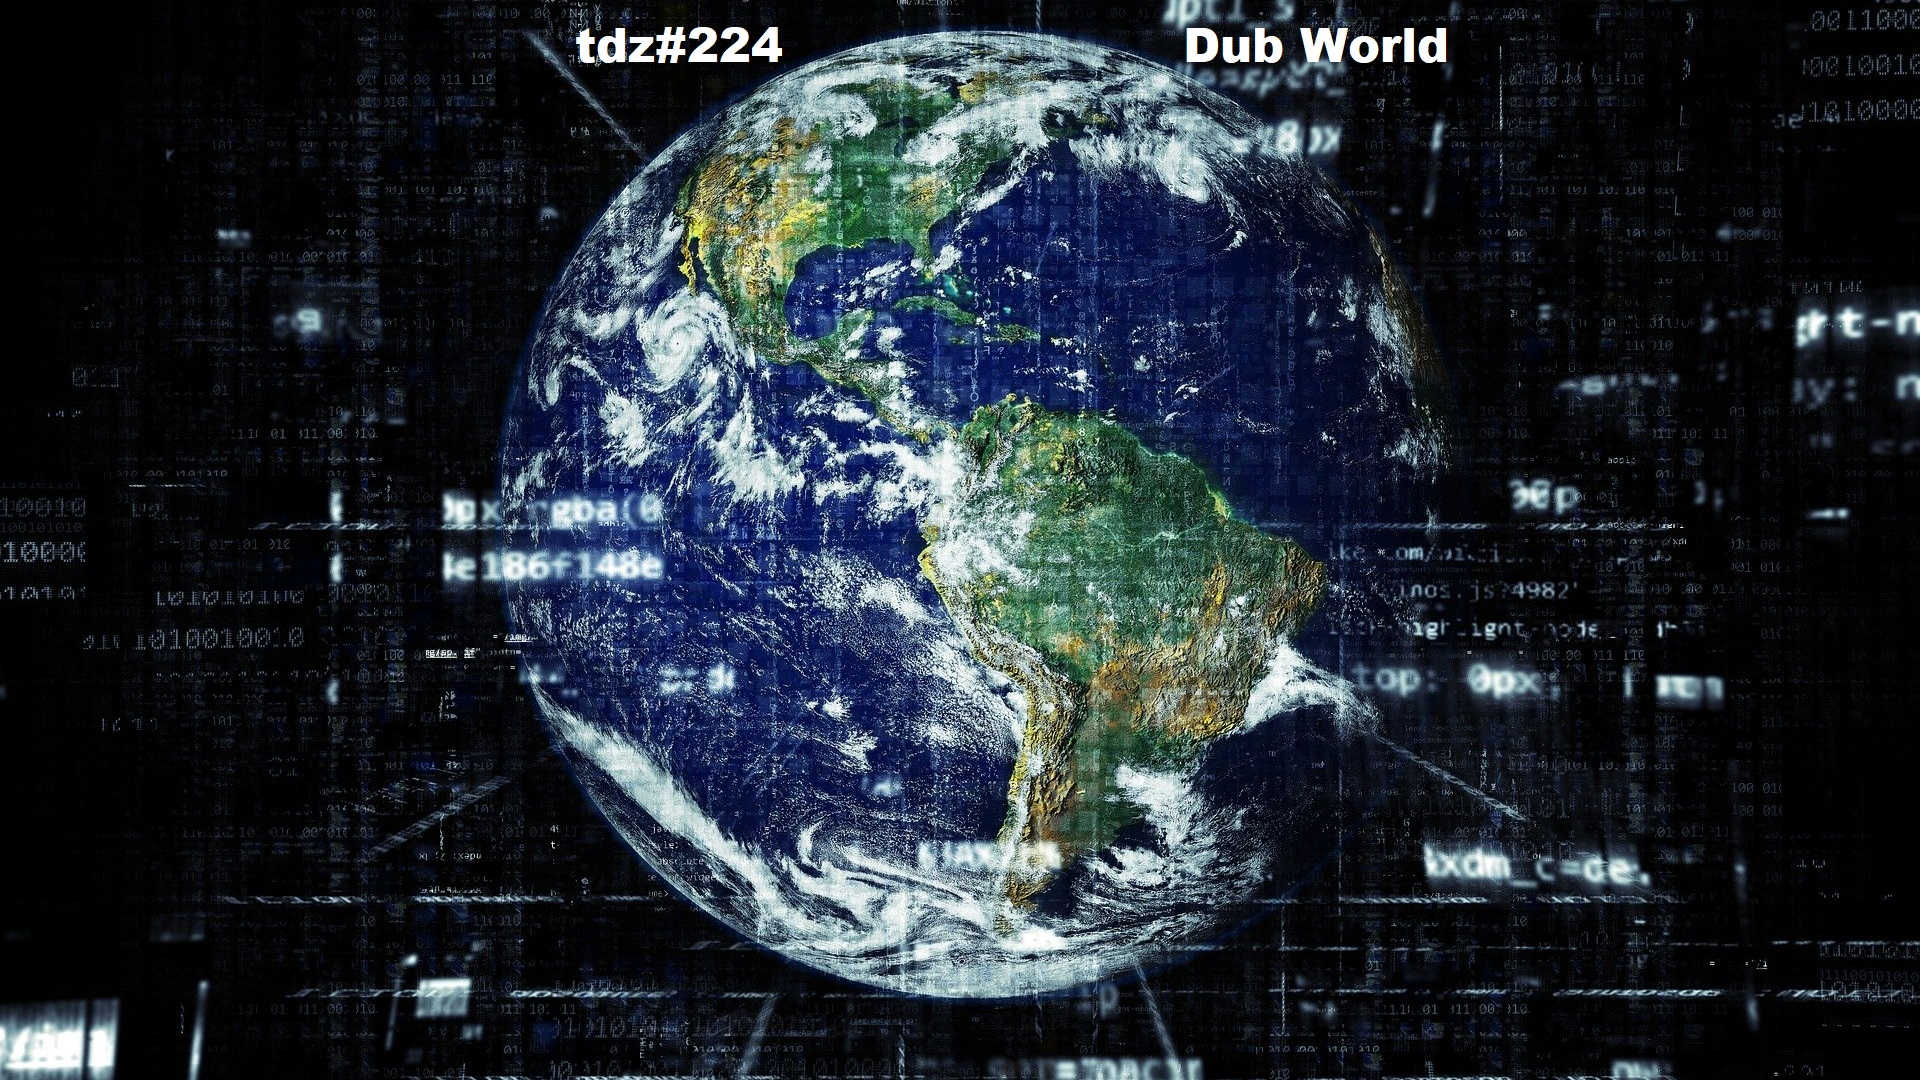 TDZ#224... Dub World.....